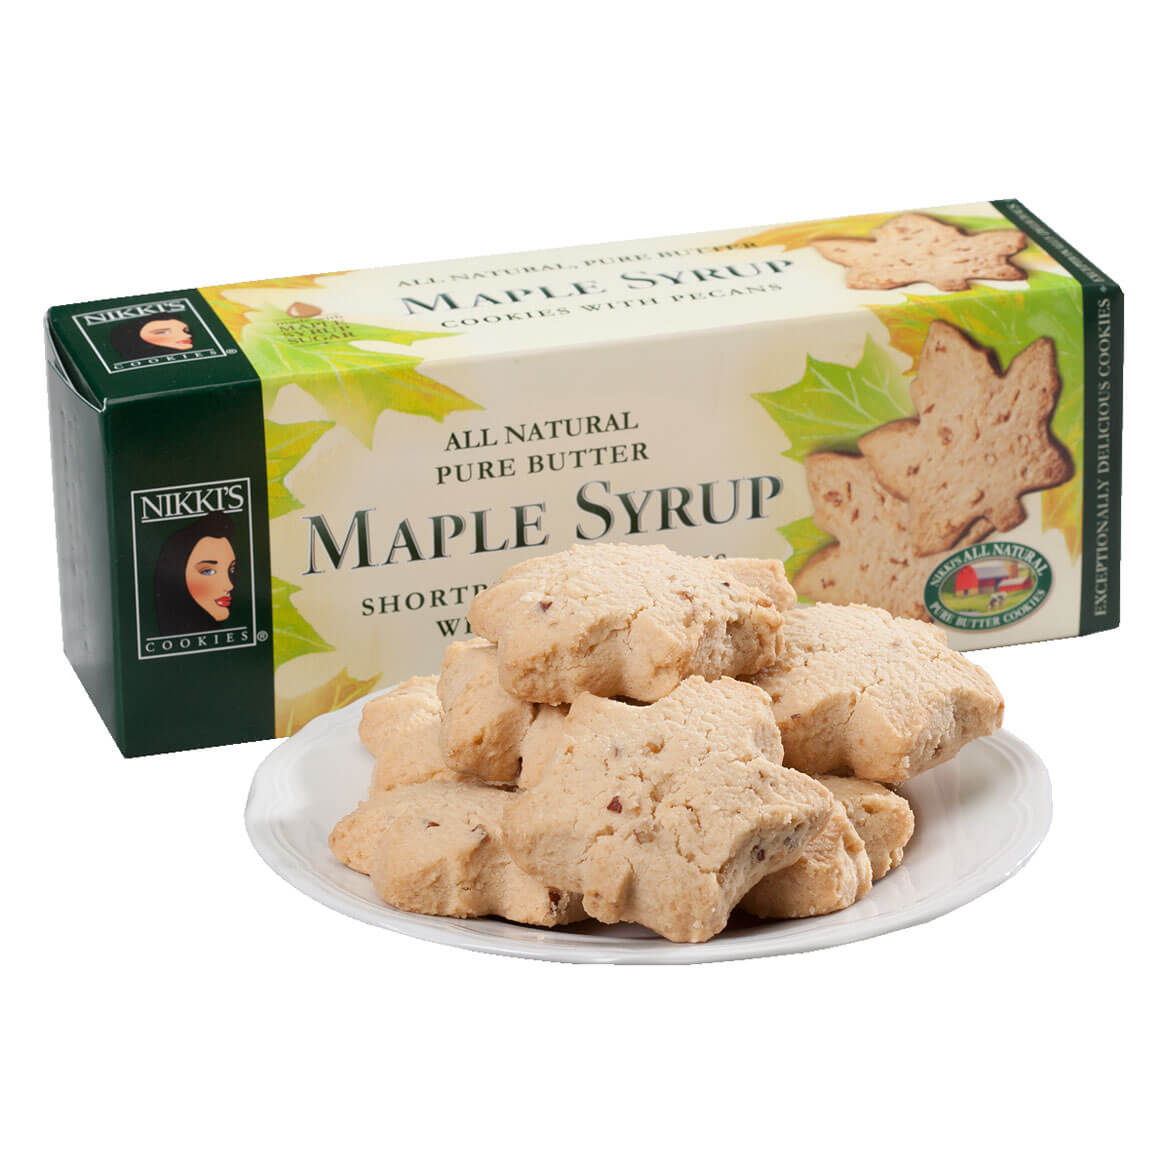 Pure Butter Maple Syrup Shortbread Cookies with Pecans, 5.7